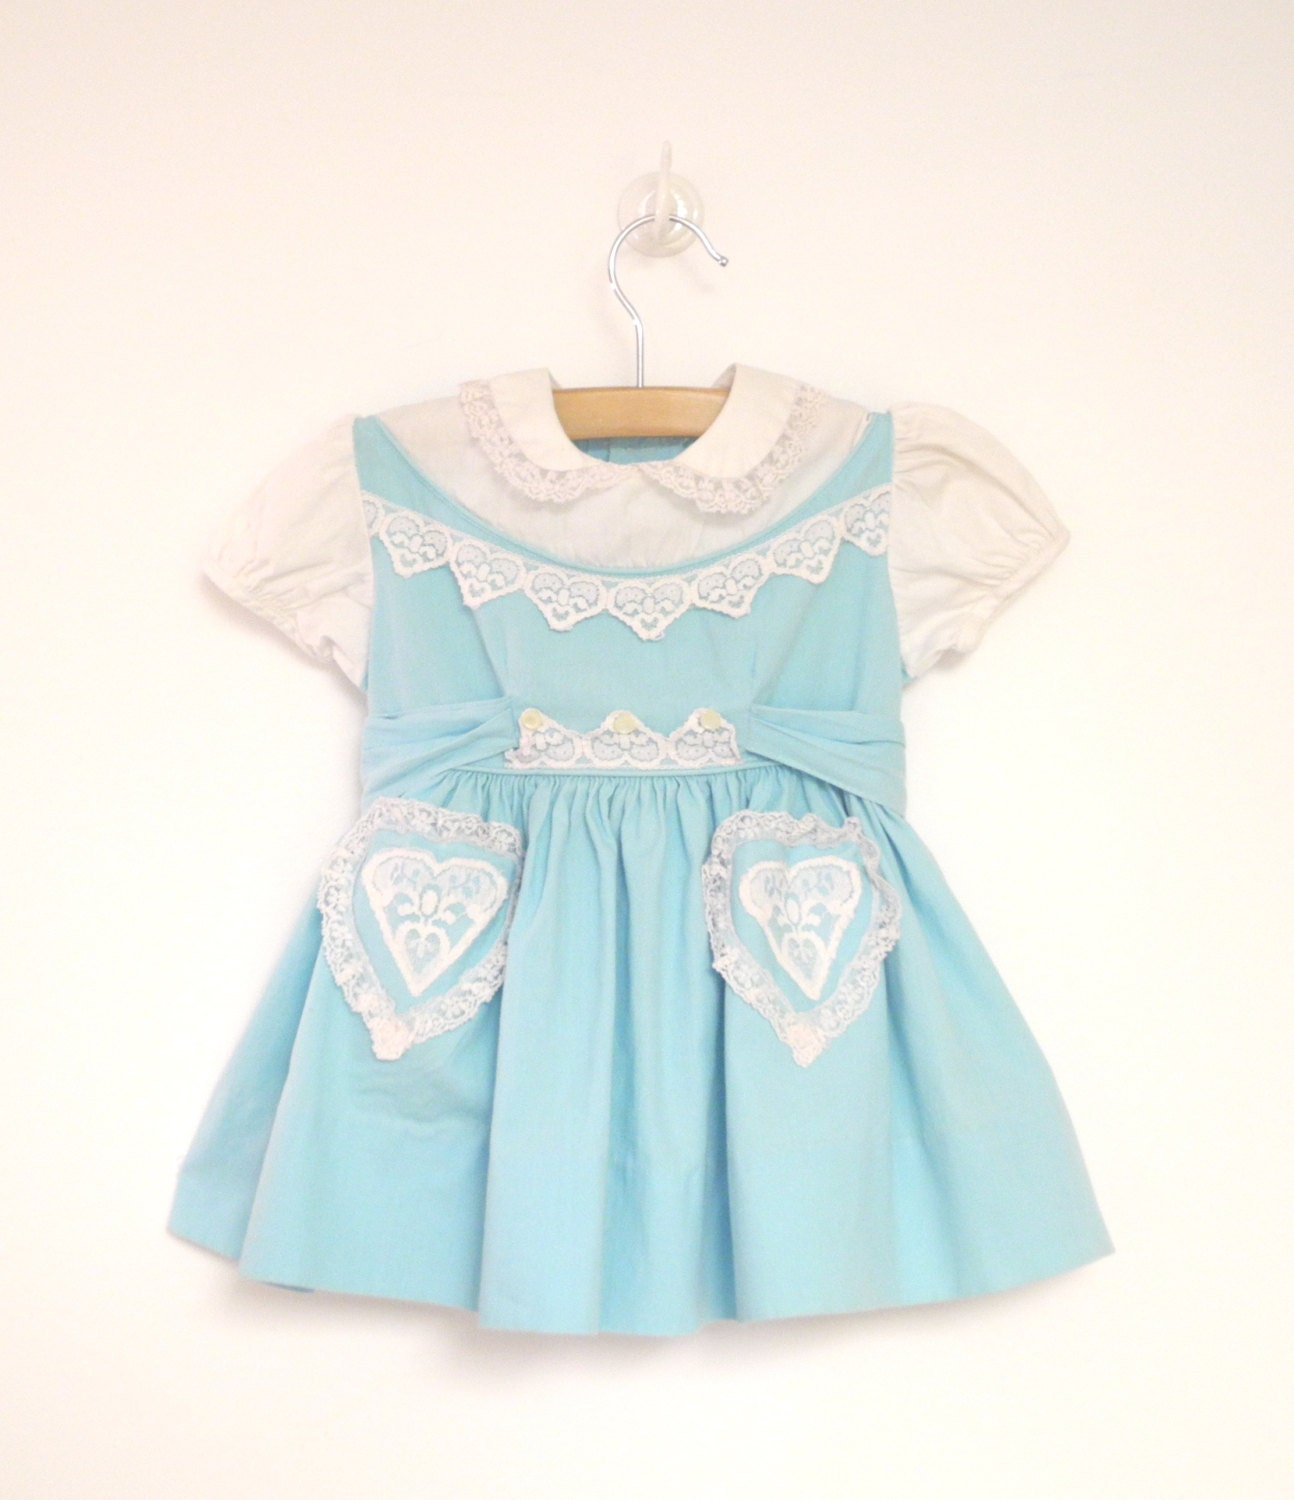 Items similar to 1950s Baby Doll and Clothes Tutorial ...  |1950 Baby Stuff